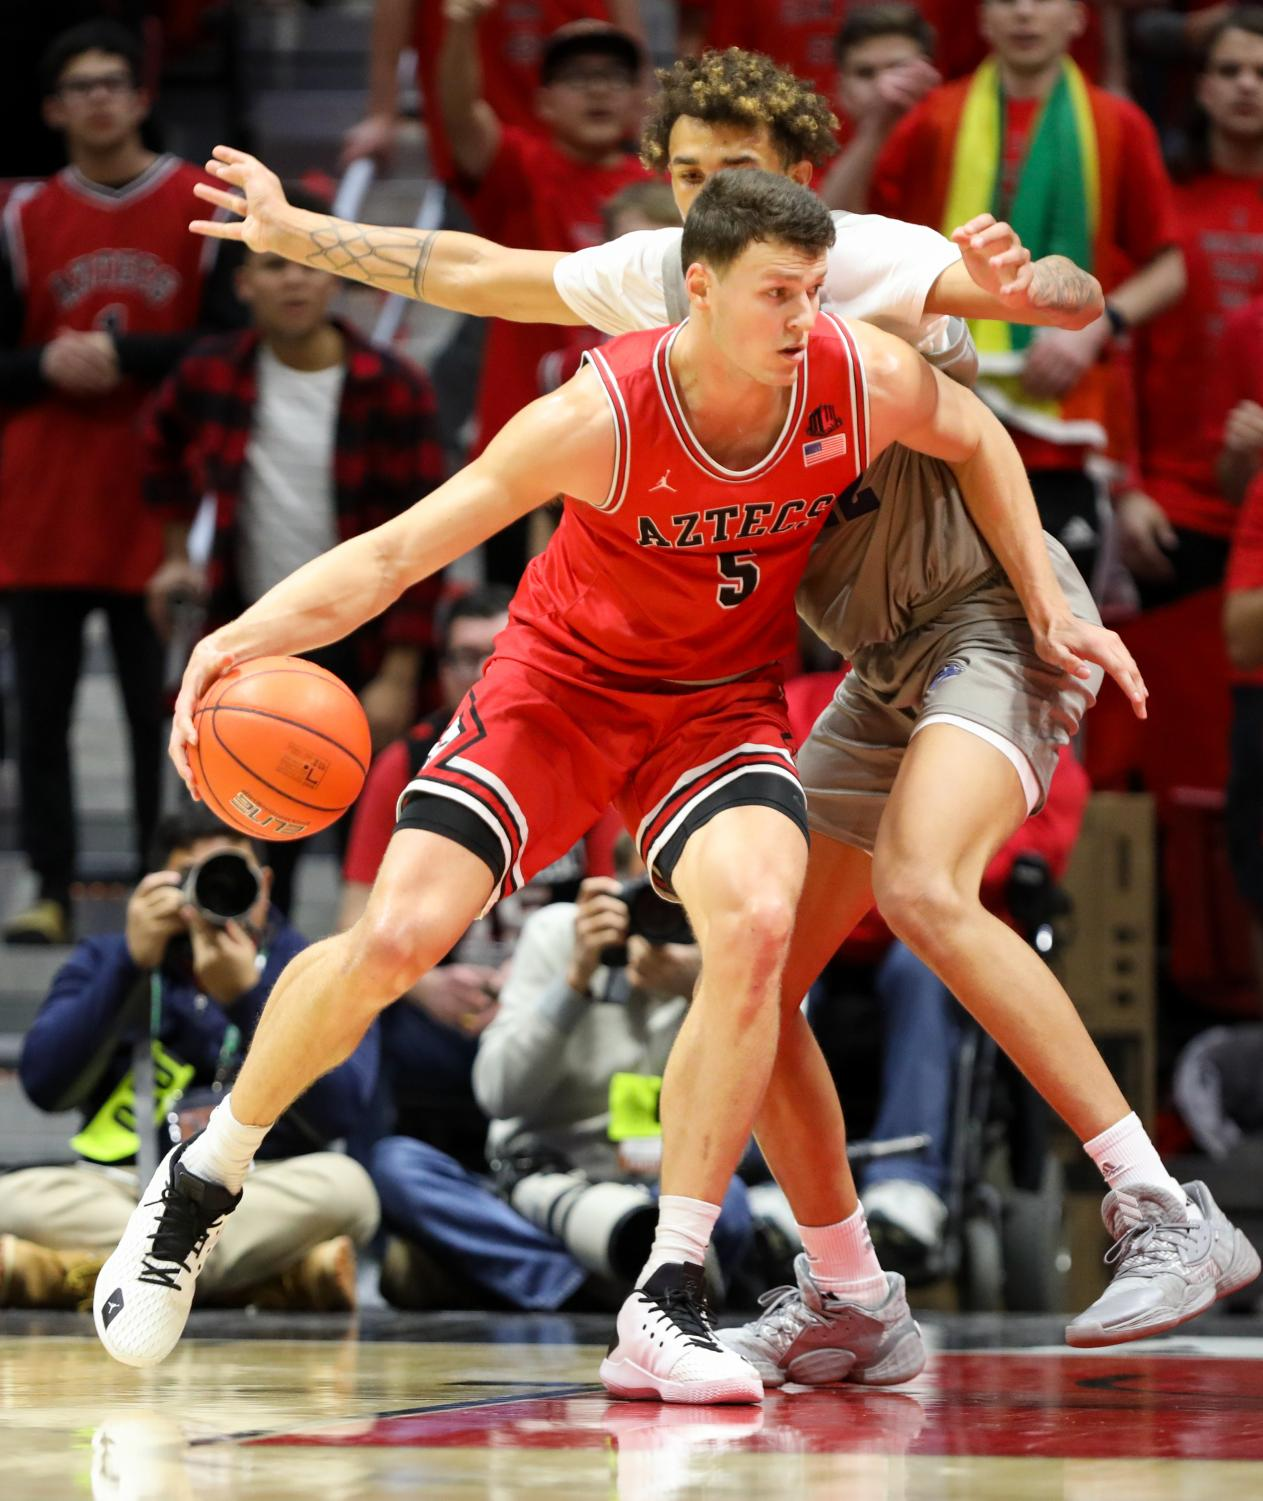 Senior forward Yanni Wetzell attempts to get to the basket in the Aztecs' 68-55 win over Nevada on Jan. 18 at Viejas Arena.